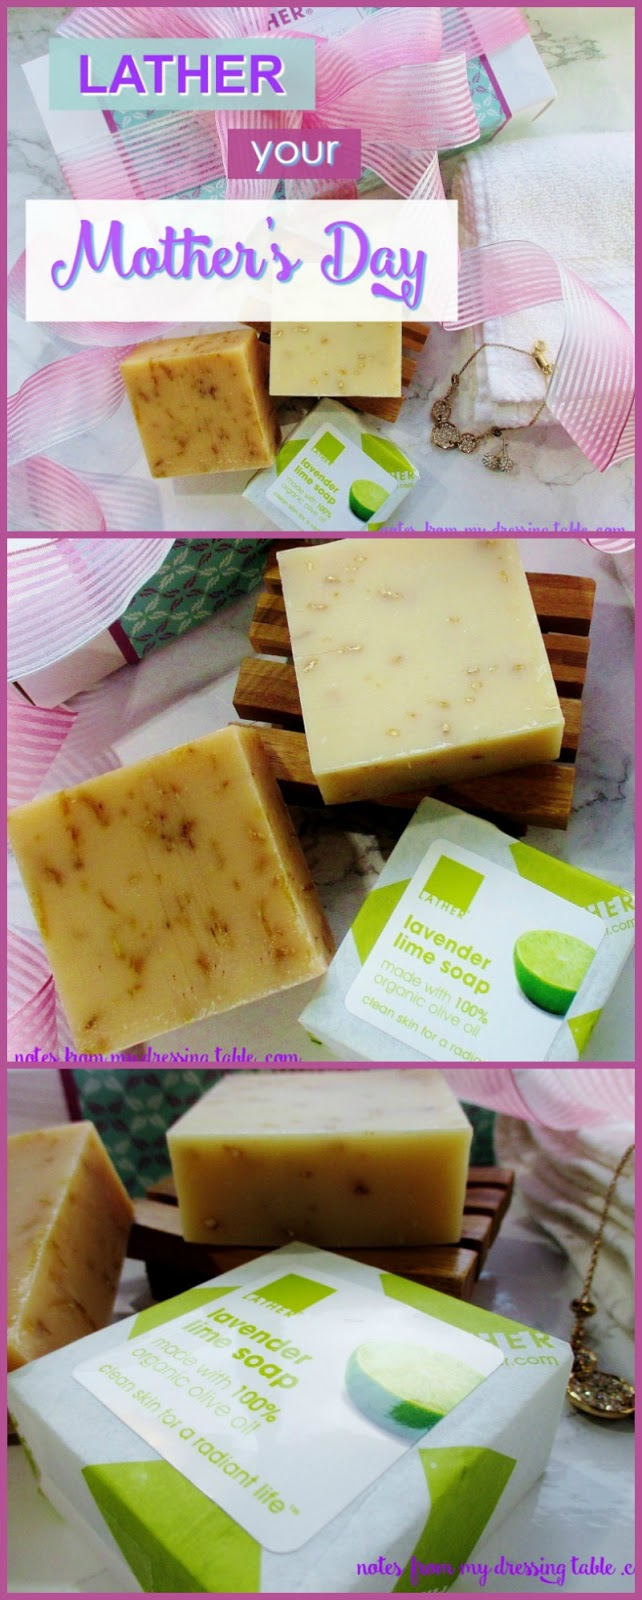 LATHER Your Mother's Day Natural LATHER Soaps